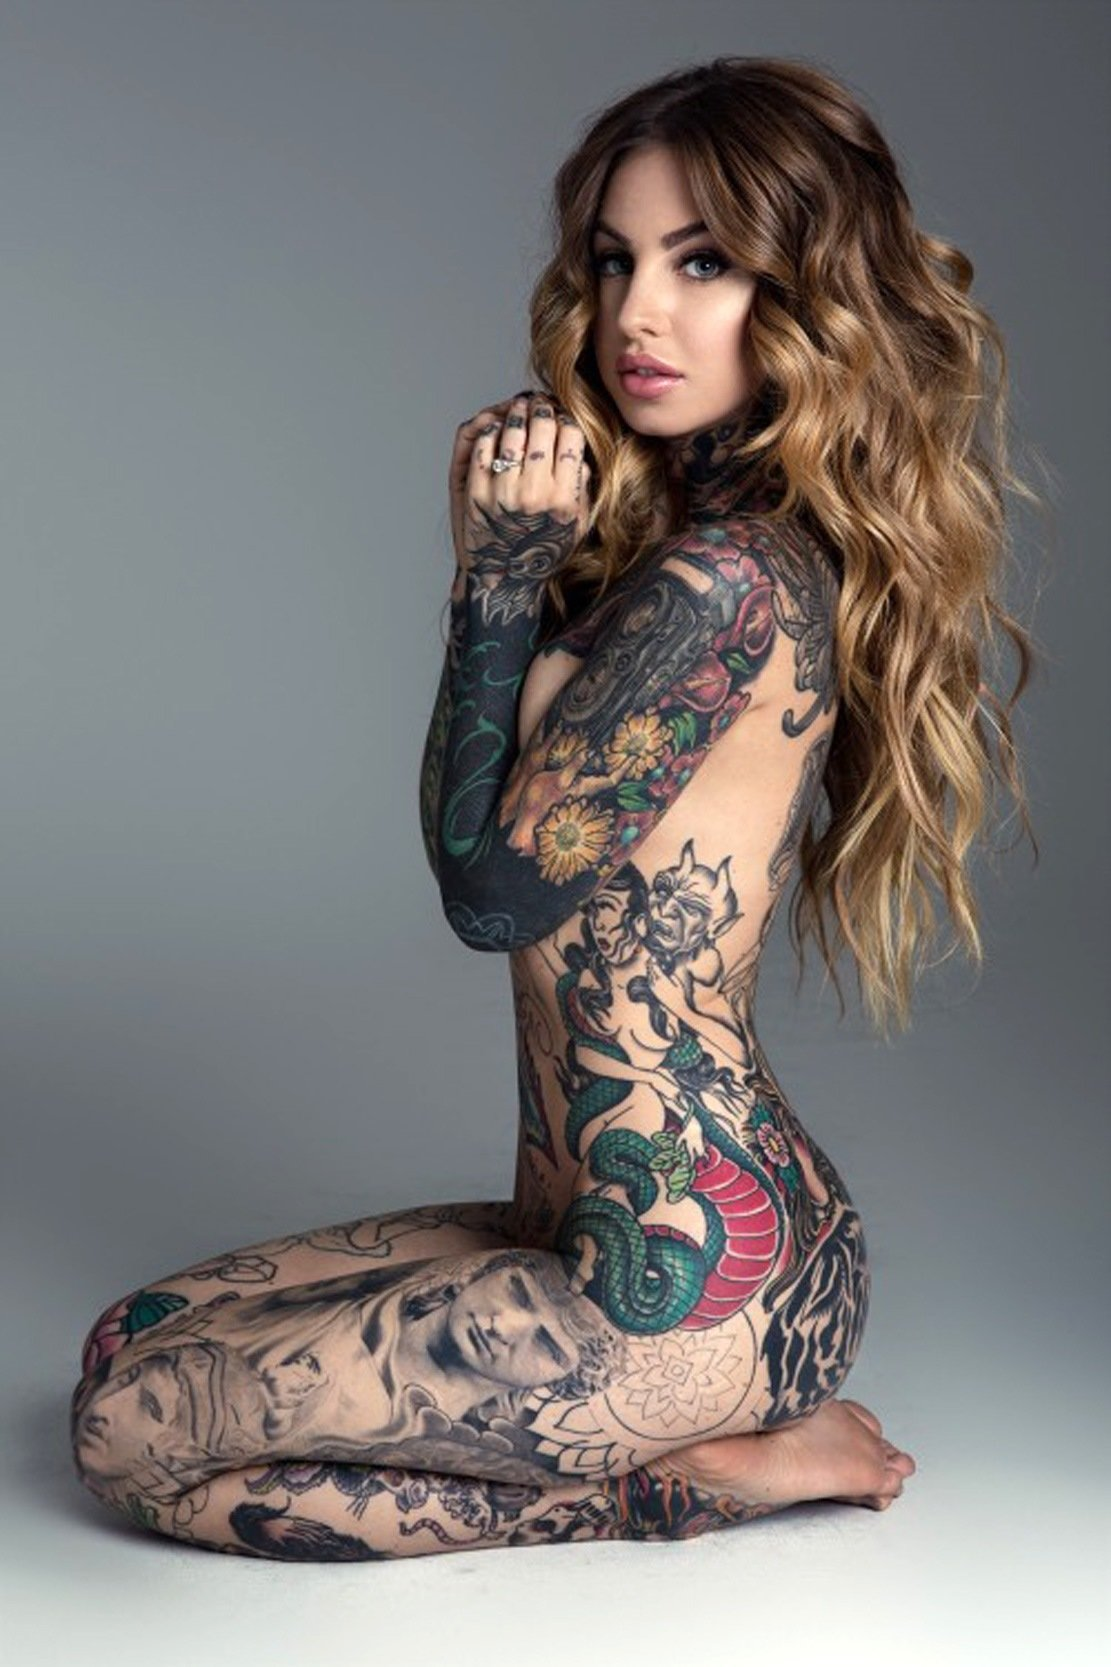 Tasteful tattoos of naked women